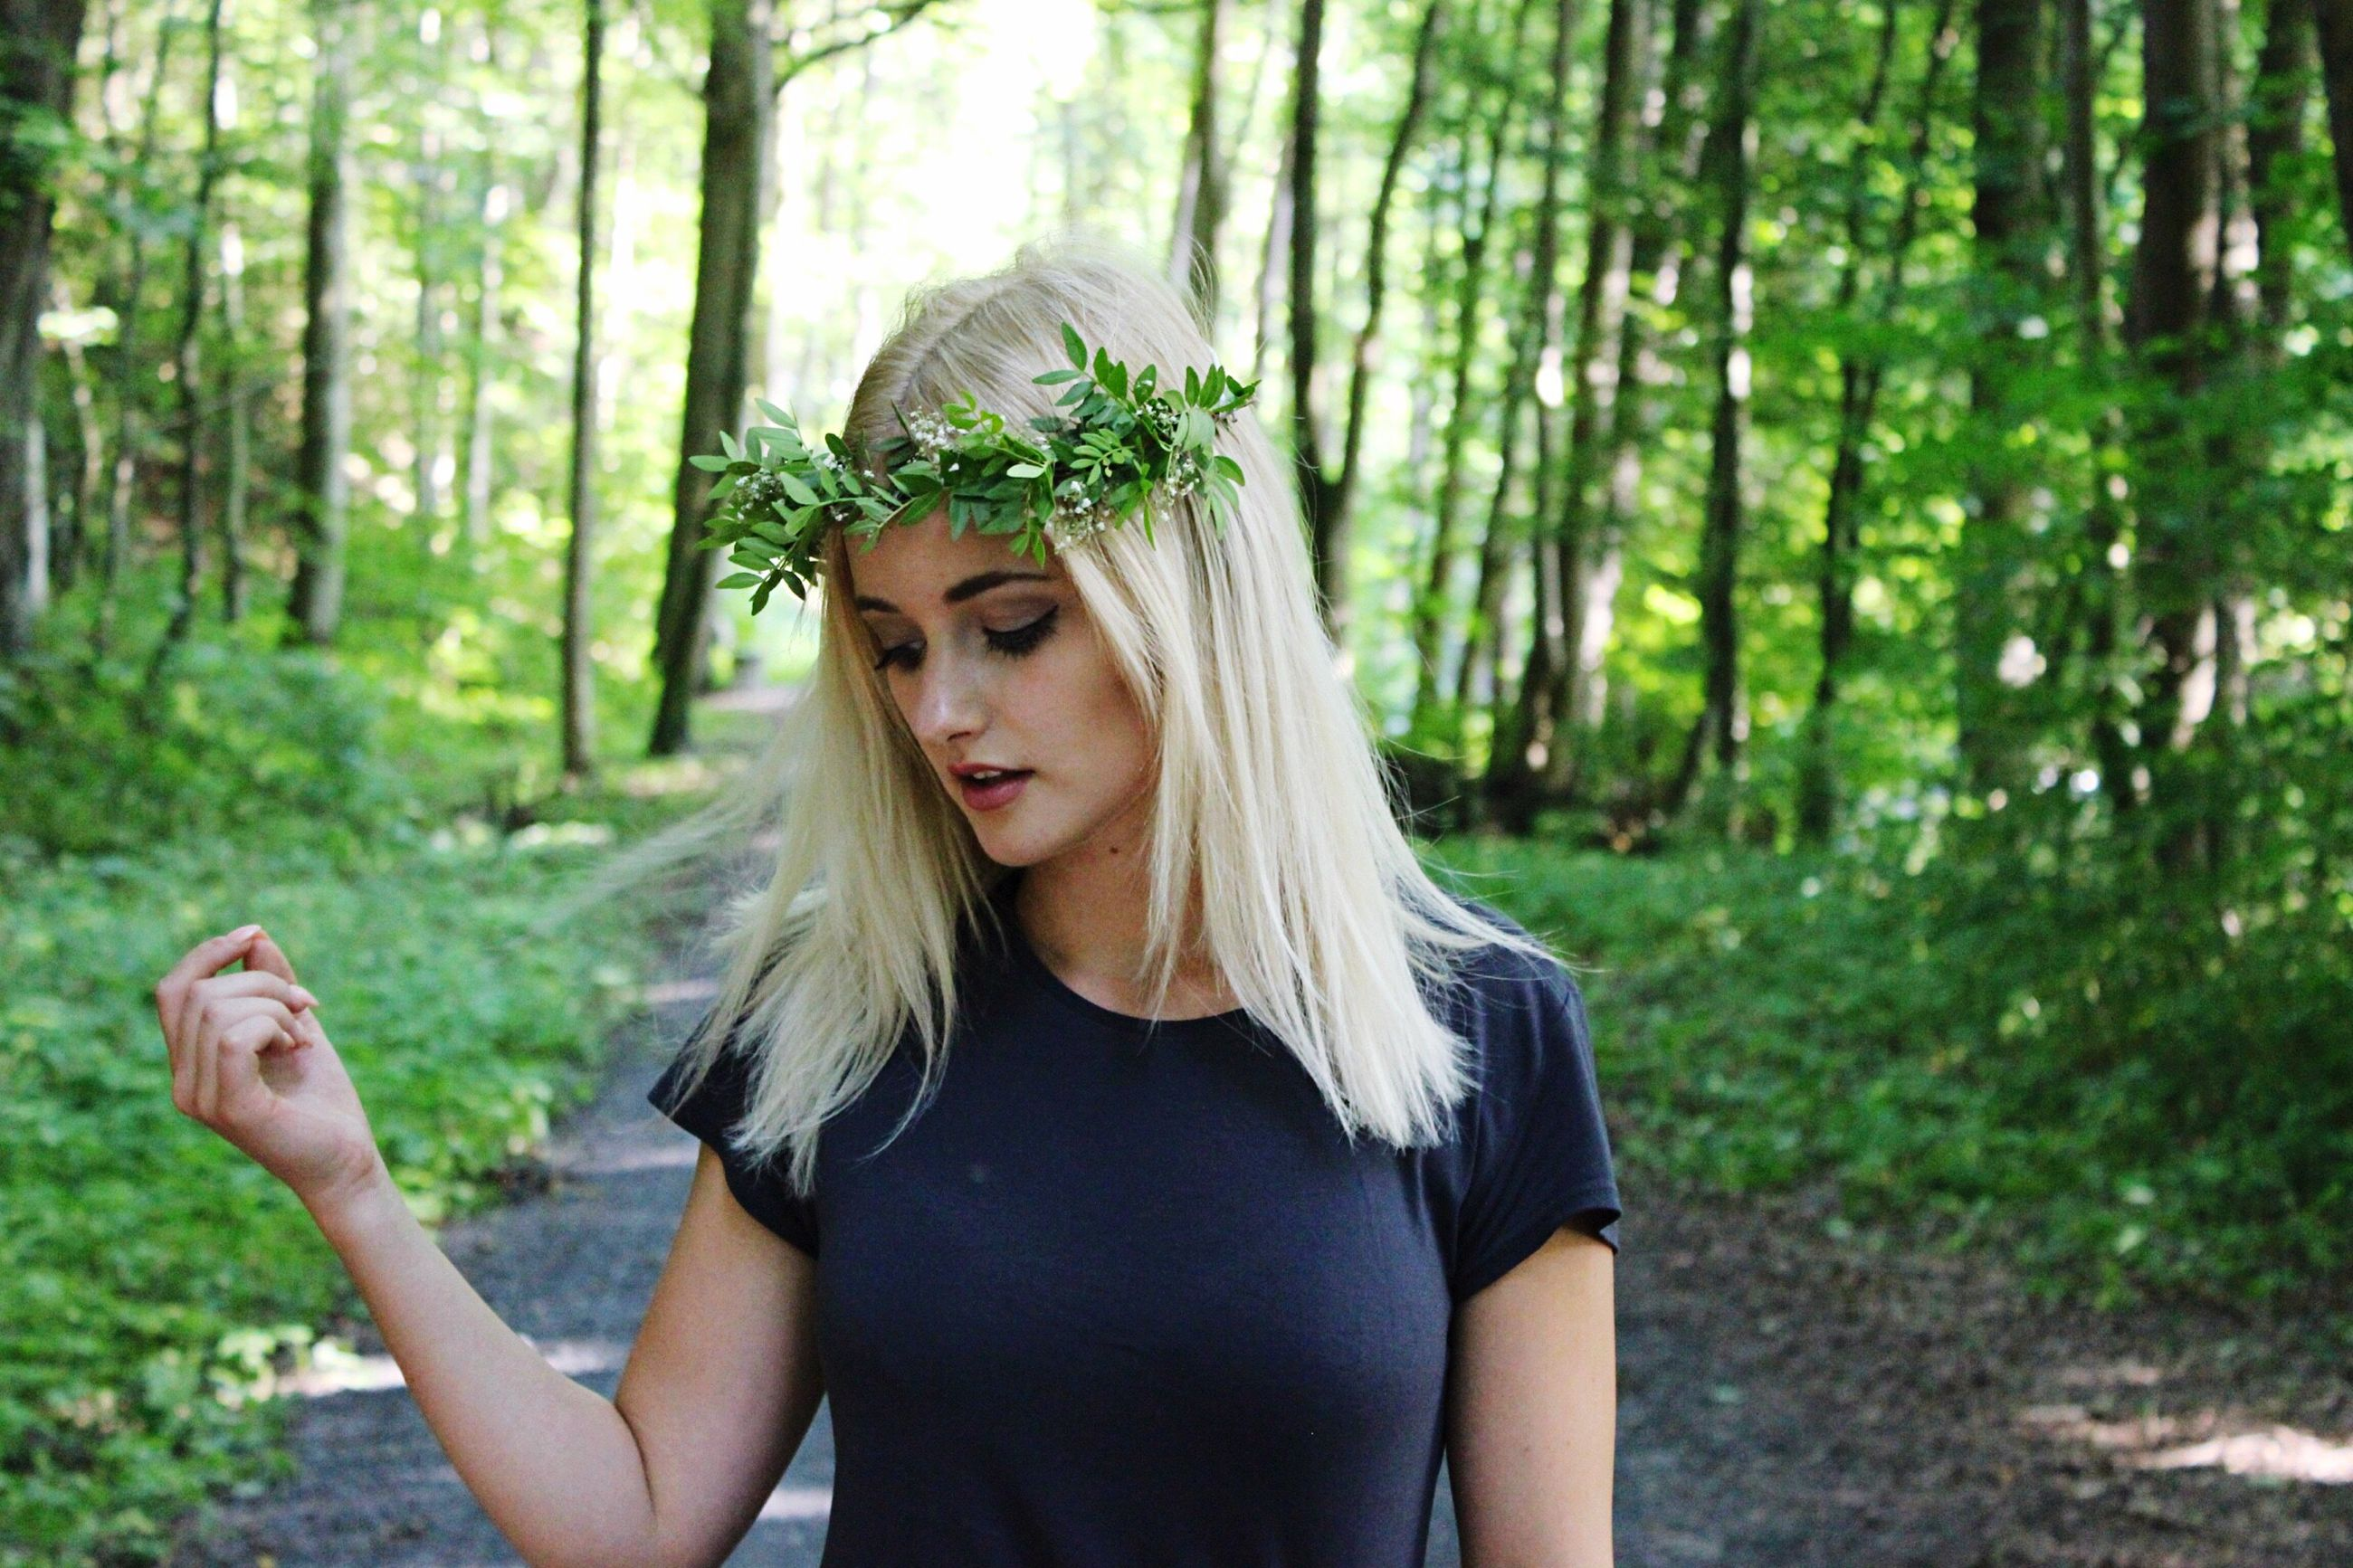 real people, young adult, forest, one person, lifestyles, nature, tree, young women, day, outdoors, blond hair, people